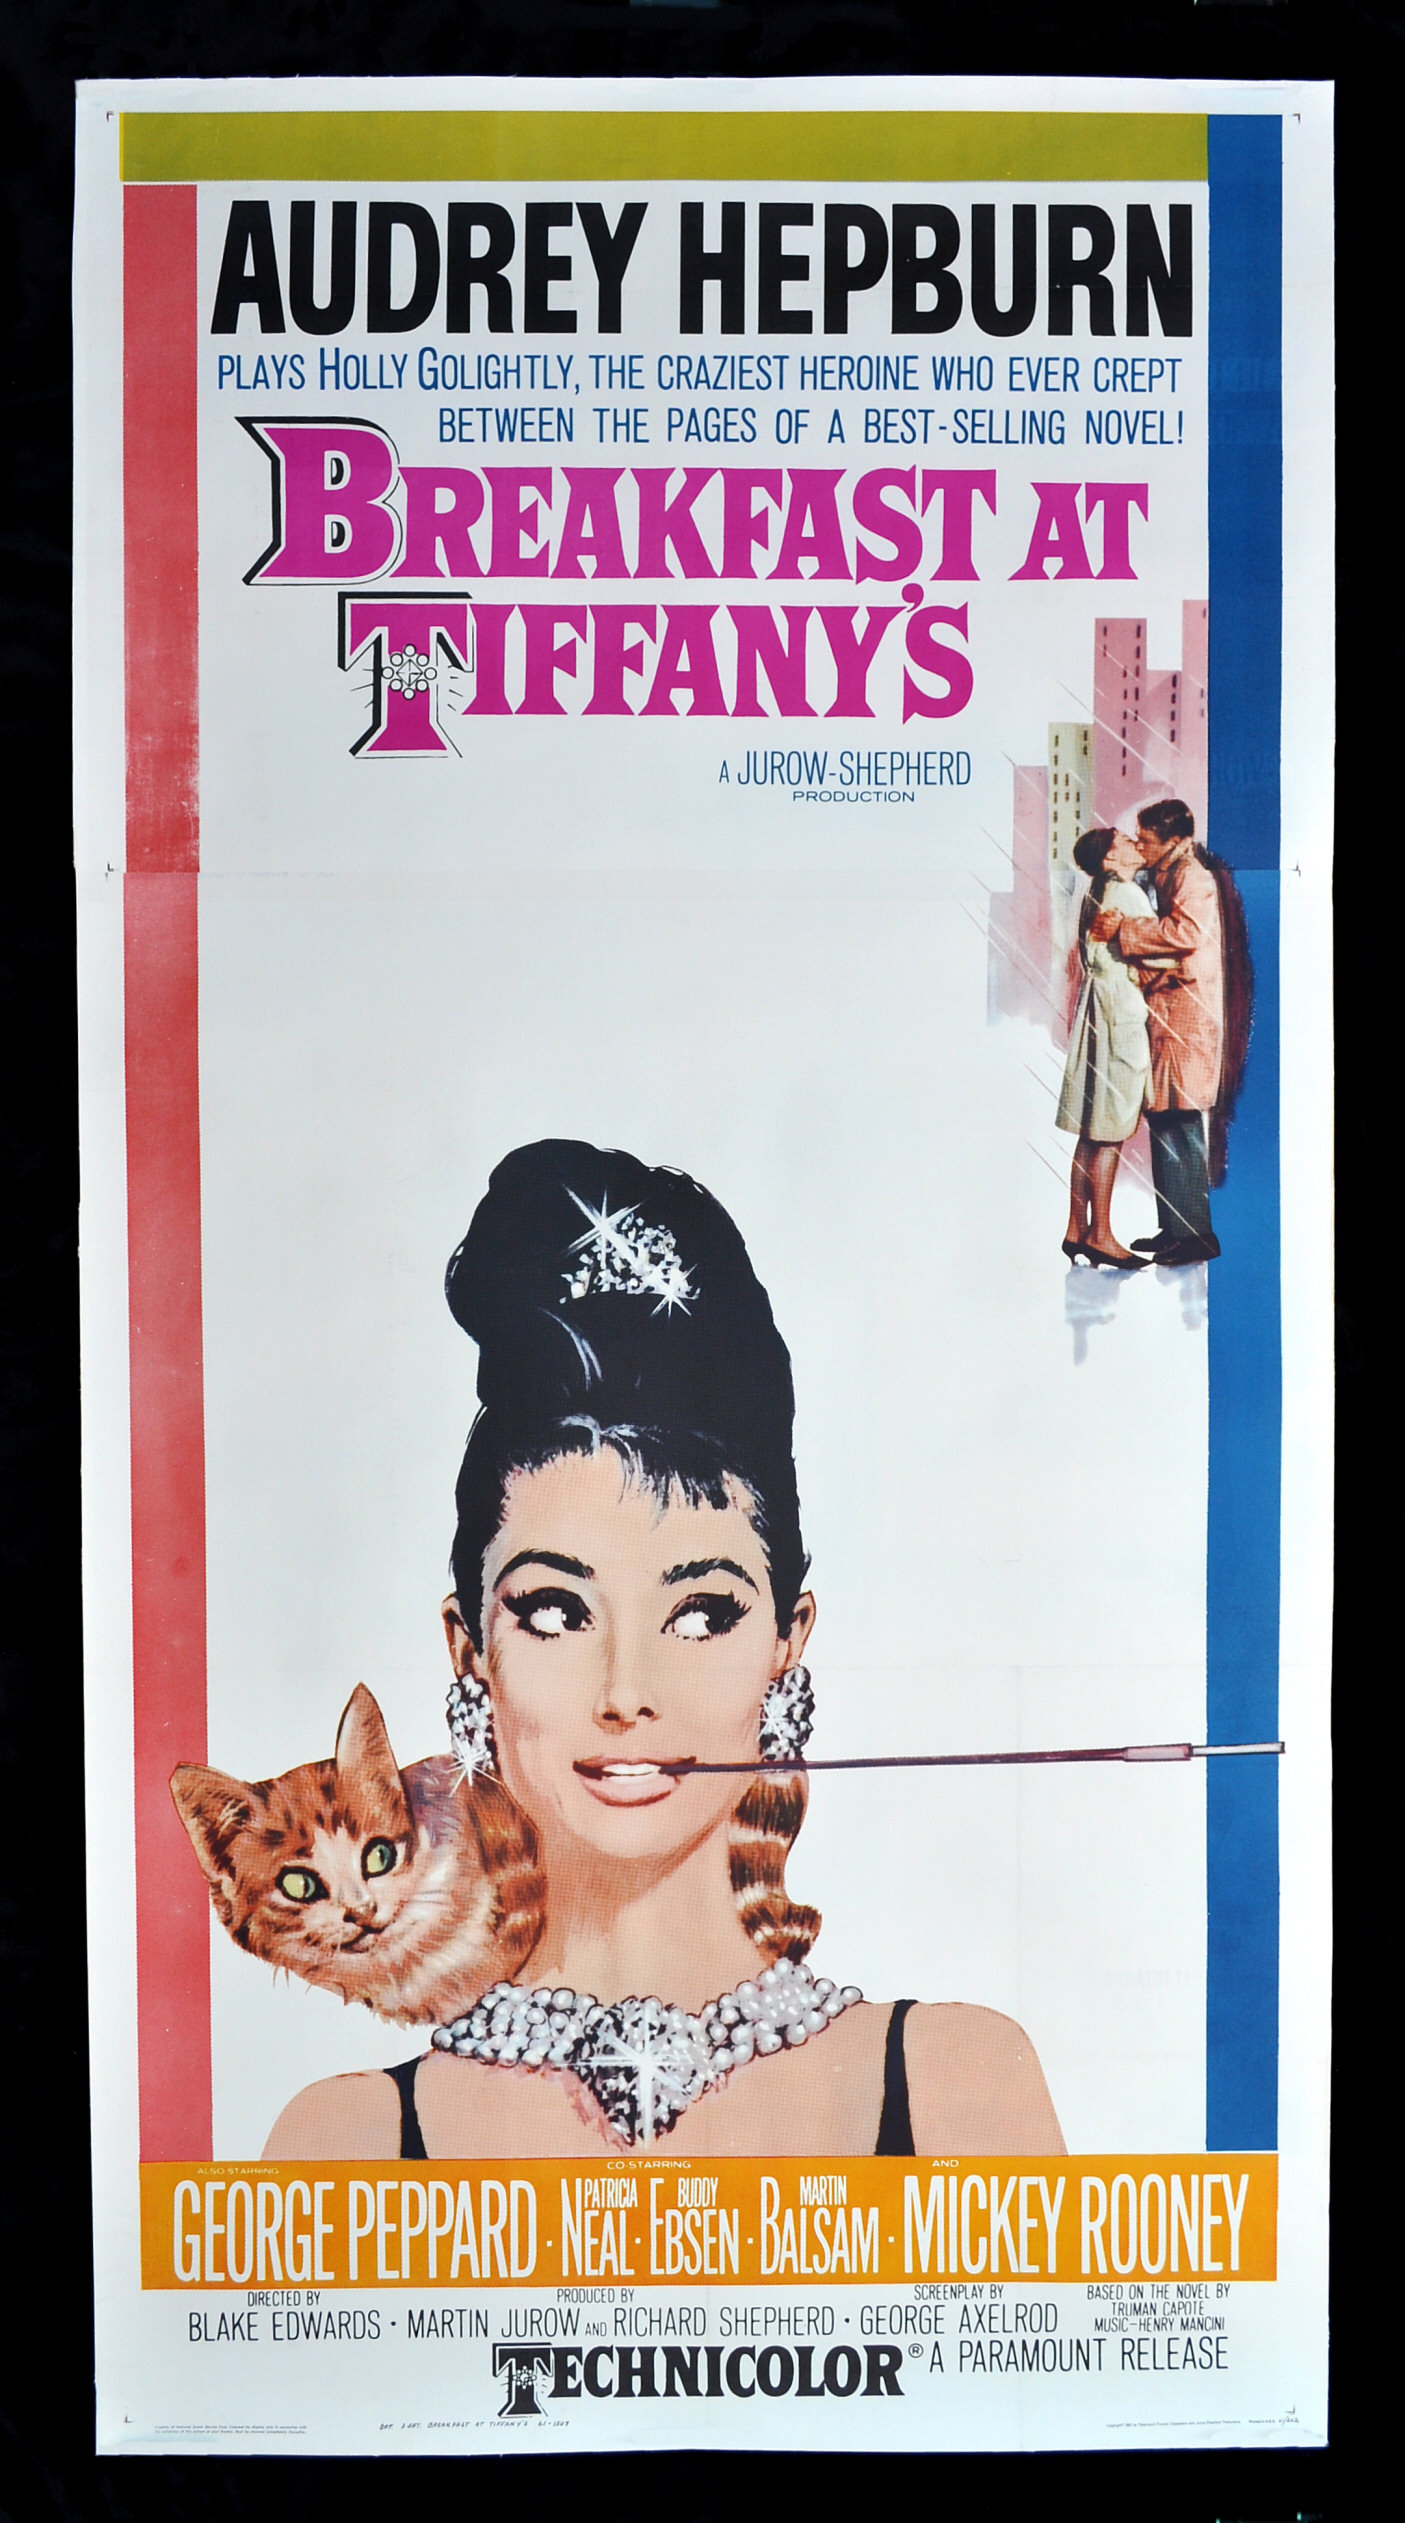 breakfast at tiffanys cinemasterpieces rare movie poster 1961 audrey hepburn ebay. Black Bedroom Furniture Sets. Home Design Ideas